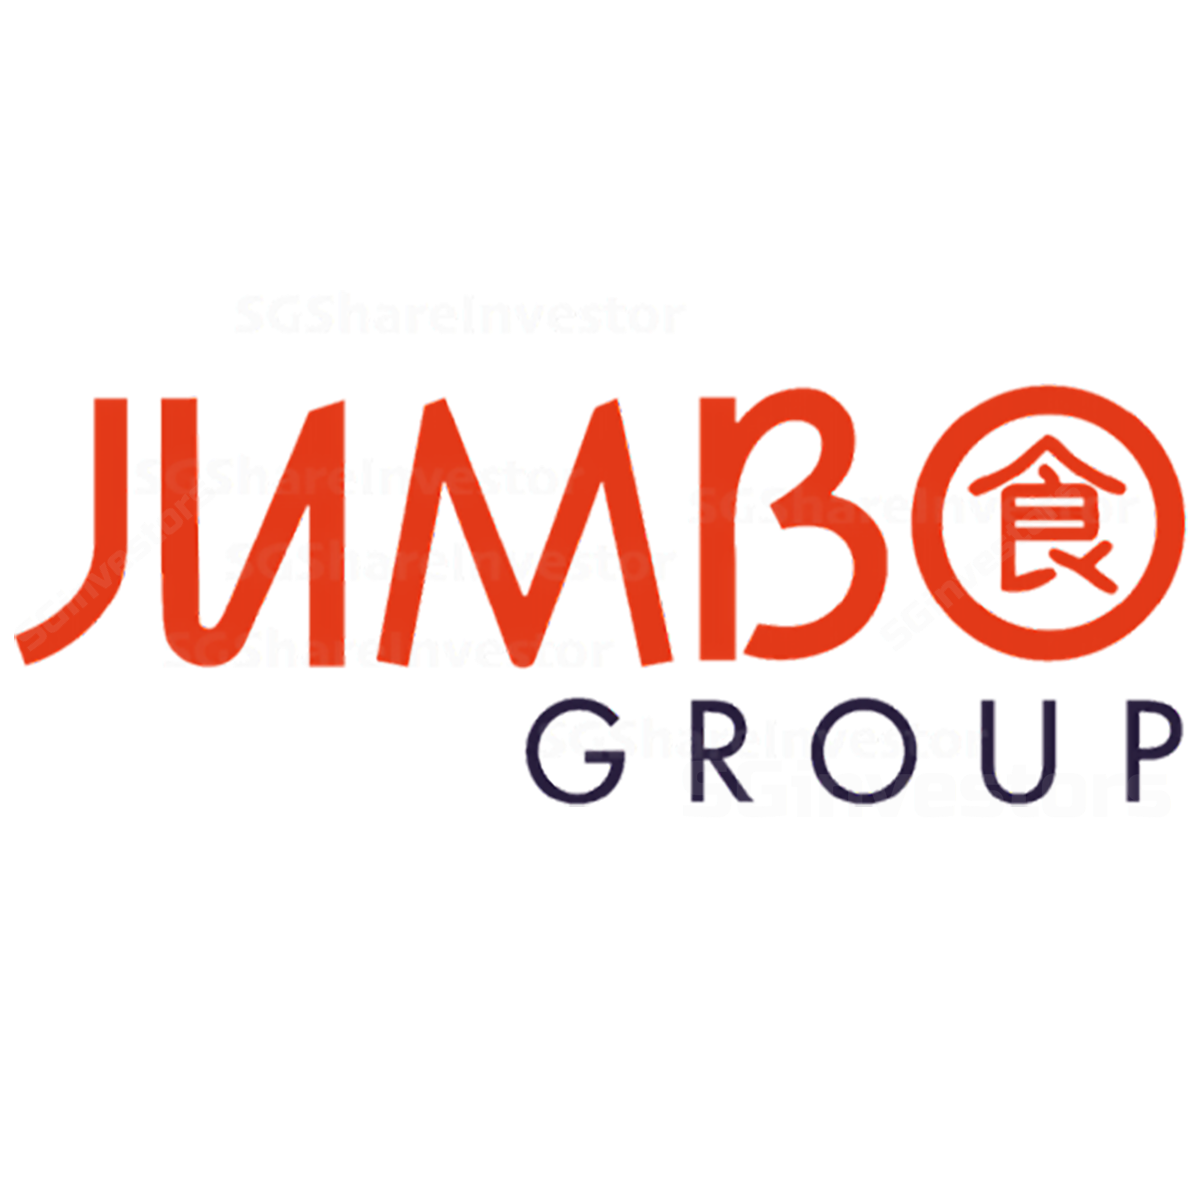 Jumbo Group (JUMBO SP) - UOB Kay Hian 2017-05-16: 2QFY17: Singapore Sales Slow Down But Shanghai Operations Still Growing